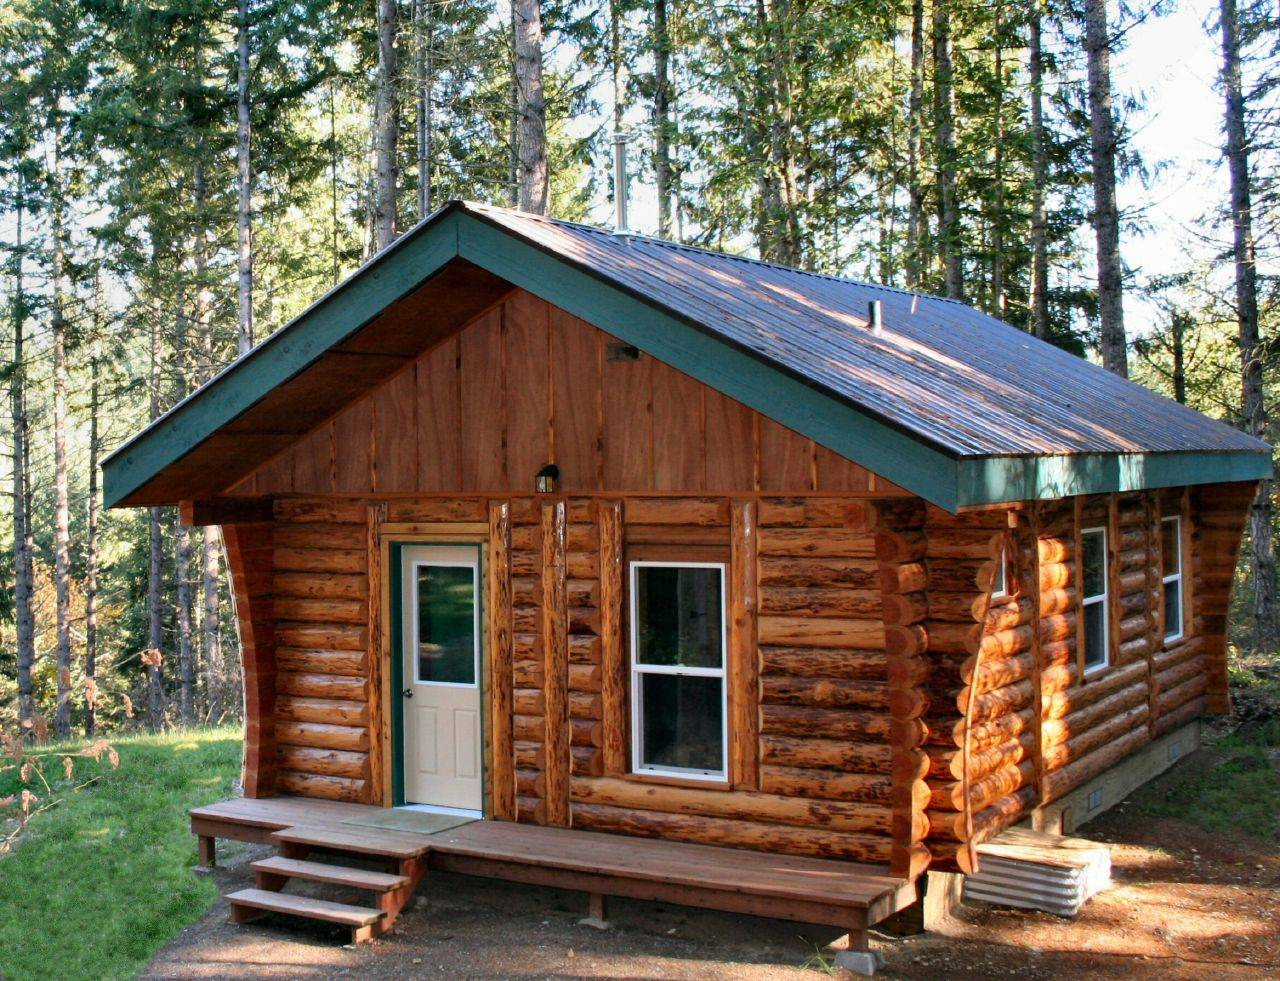 Log Cabins Cascades Camp Conference Center House Plans - Cabin home designs